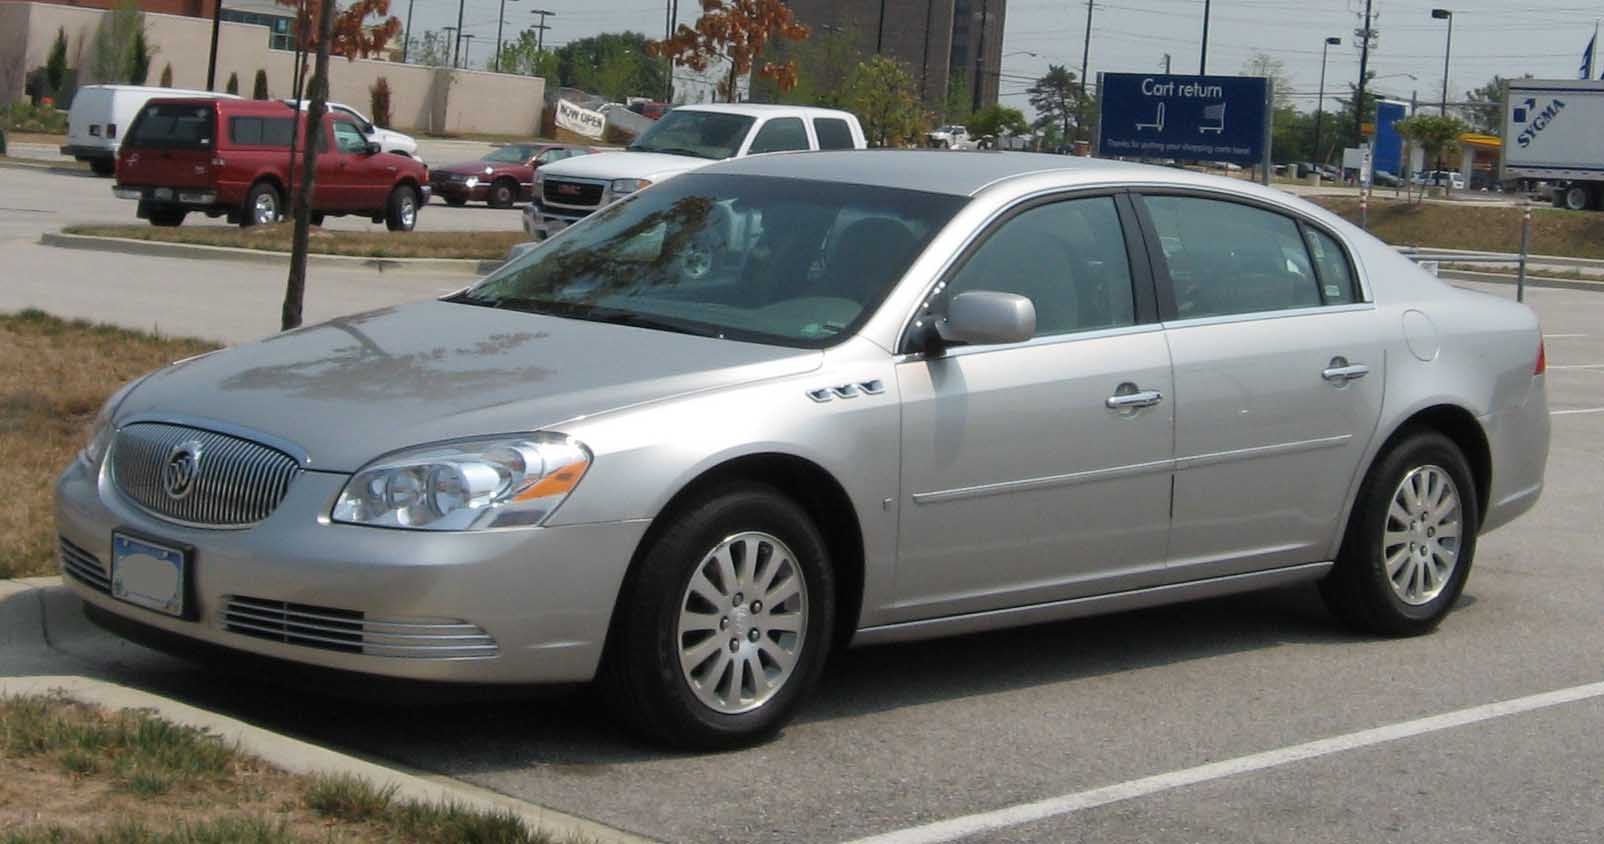 File:Buick-Lucerne.jpg - Wikimedia Commons